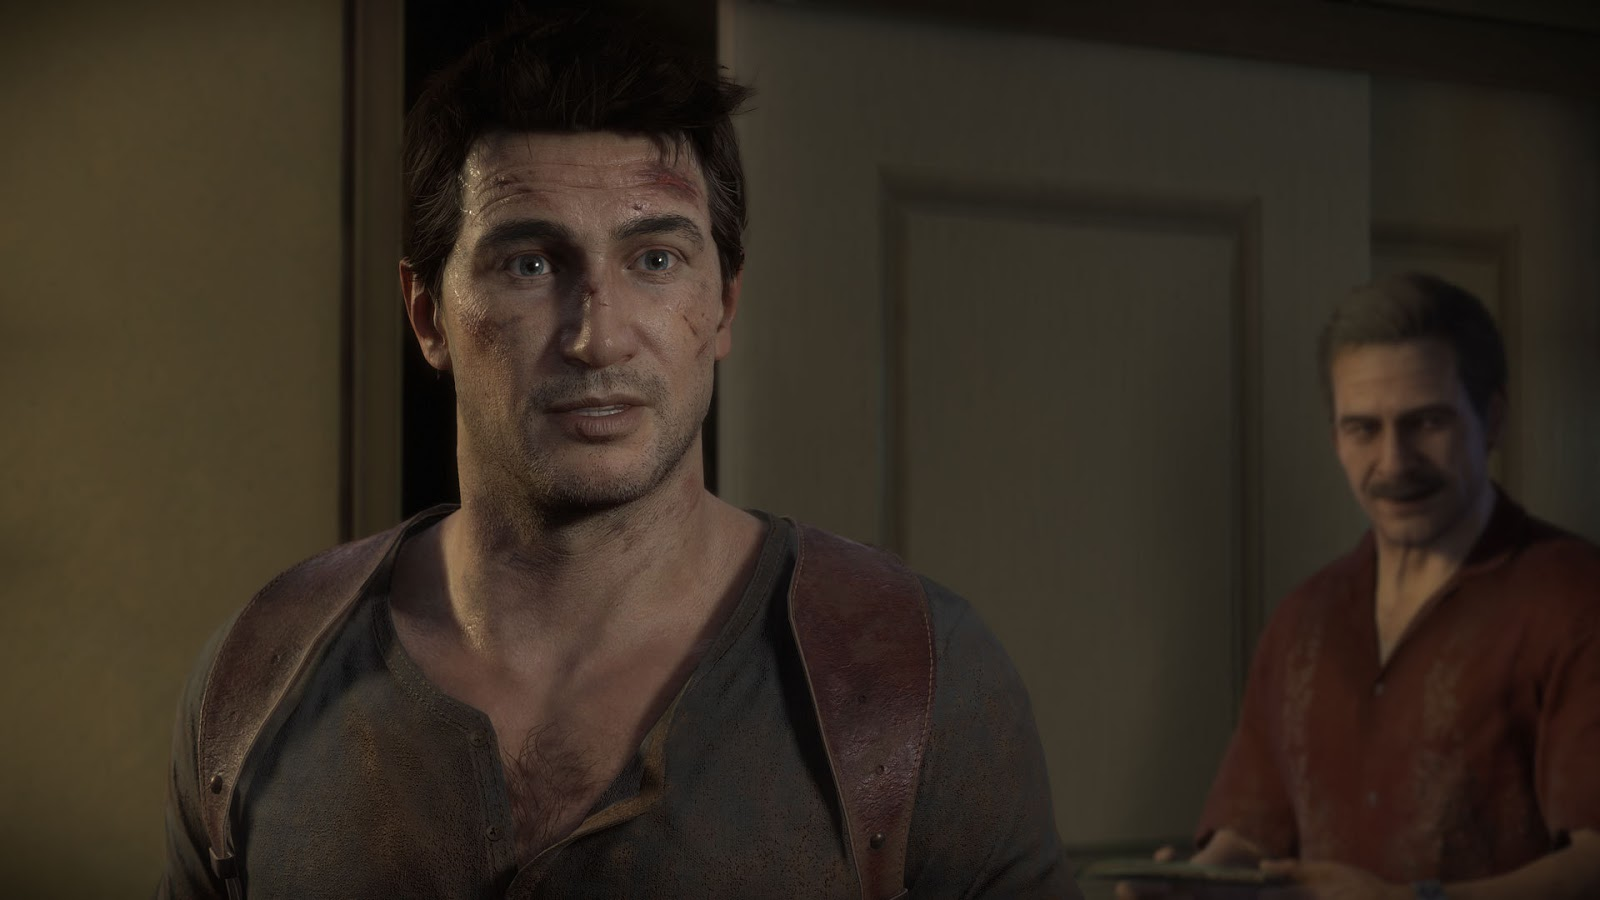 Uncharted 4: El Desenlace del Ladrón, rematadamente bueno